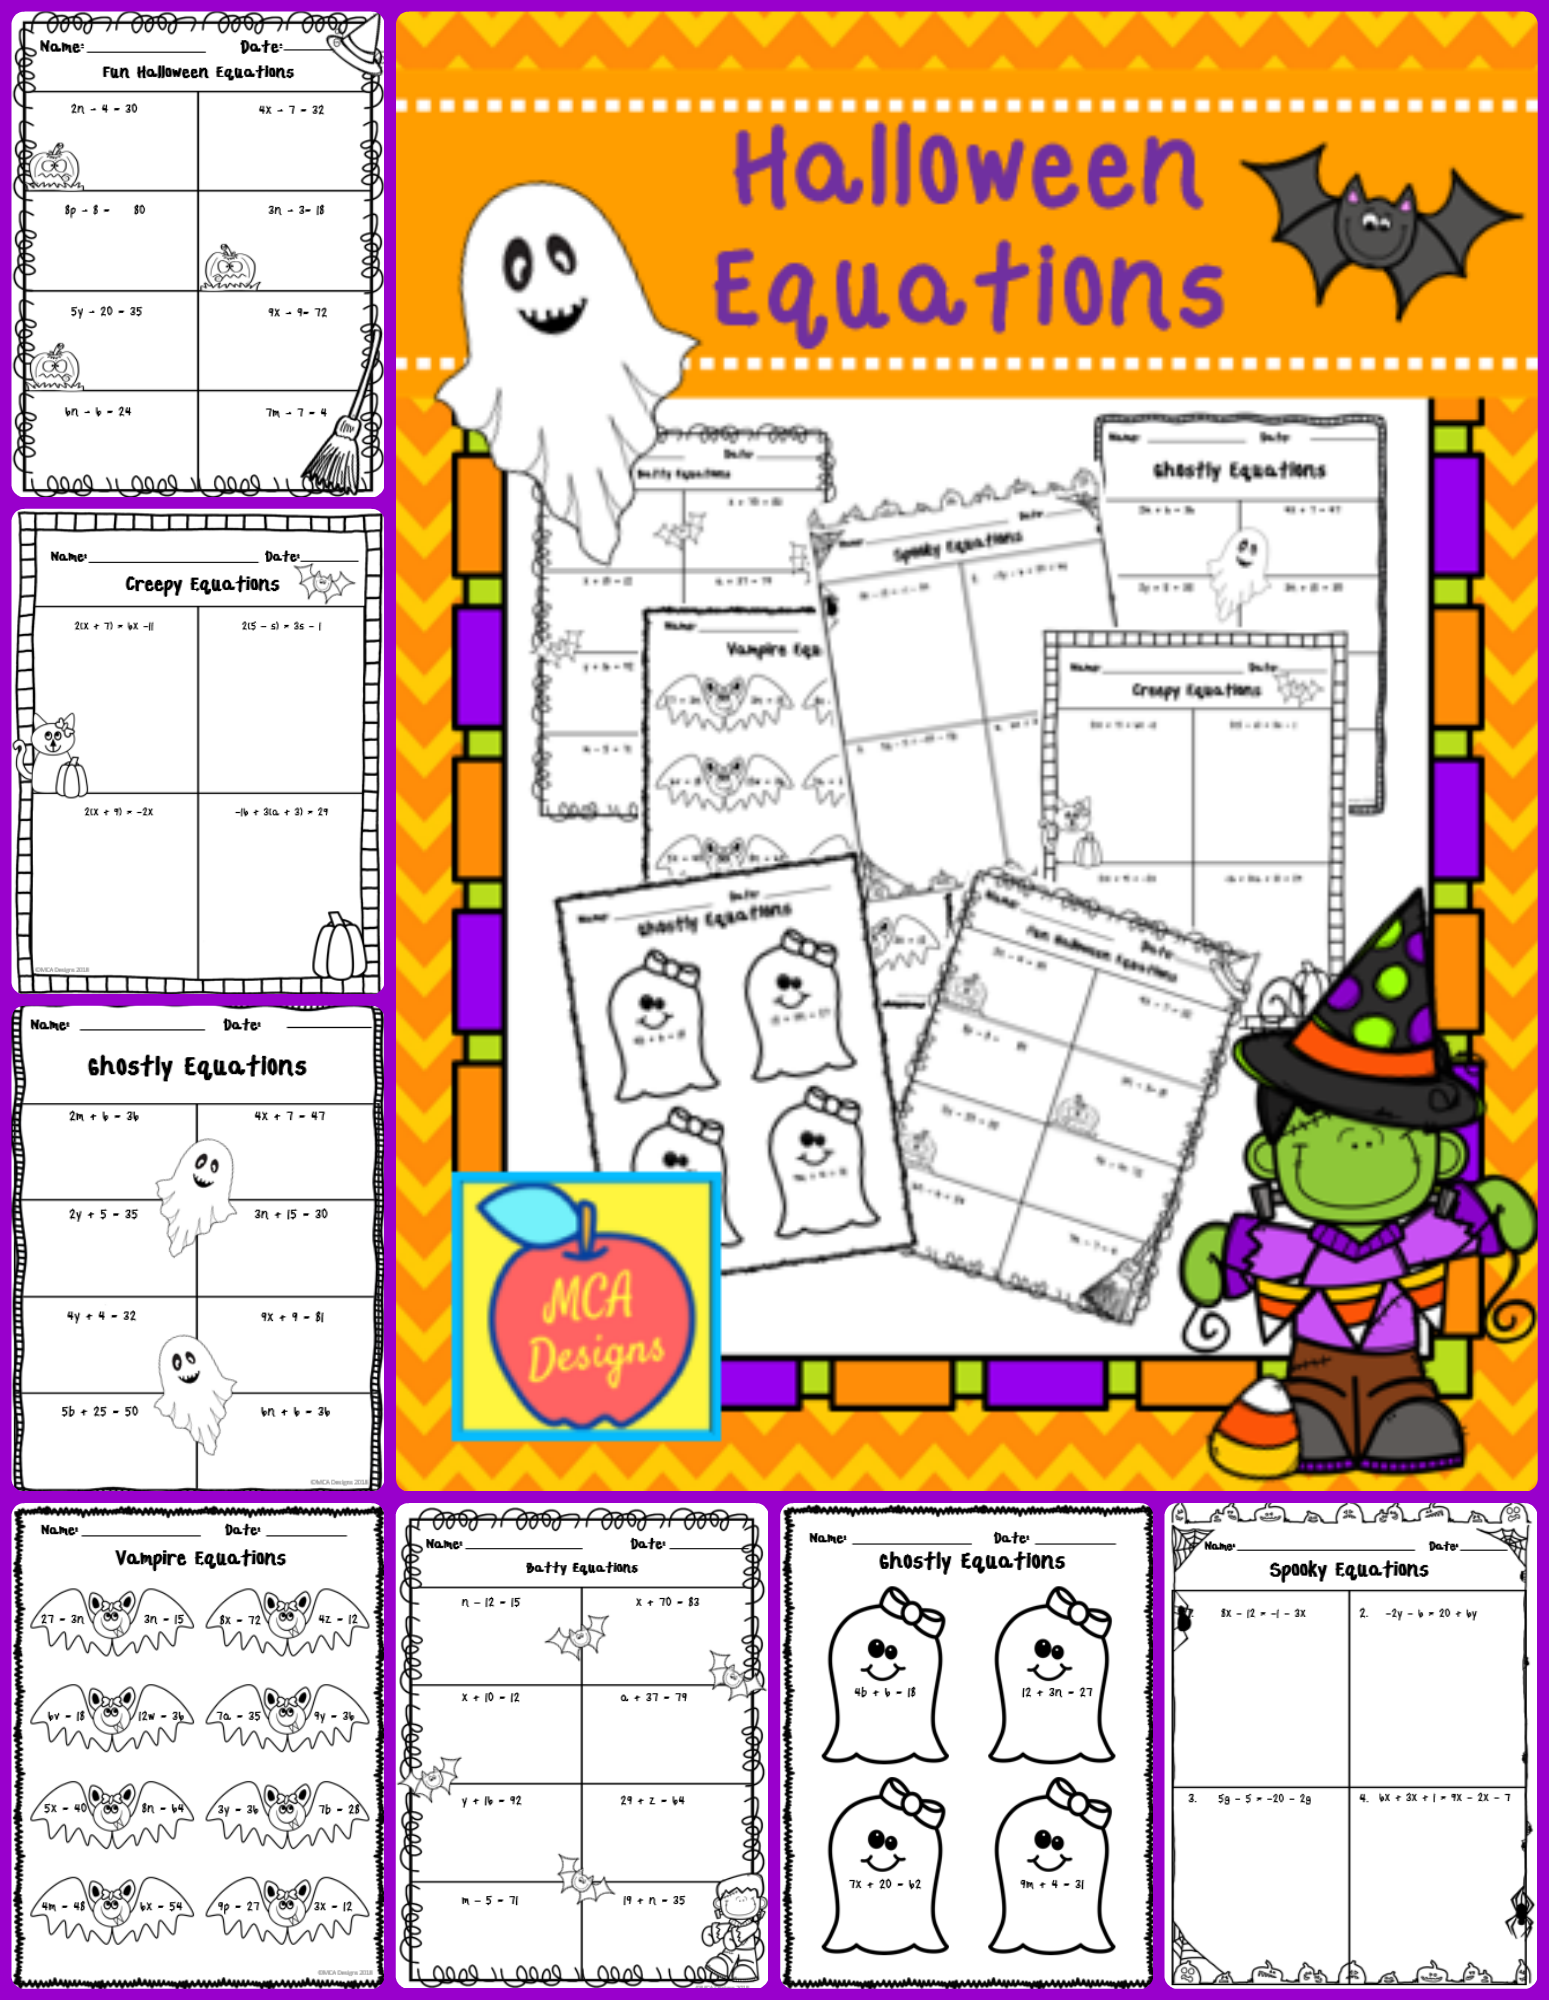 Halloween Equations October